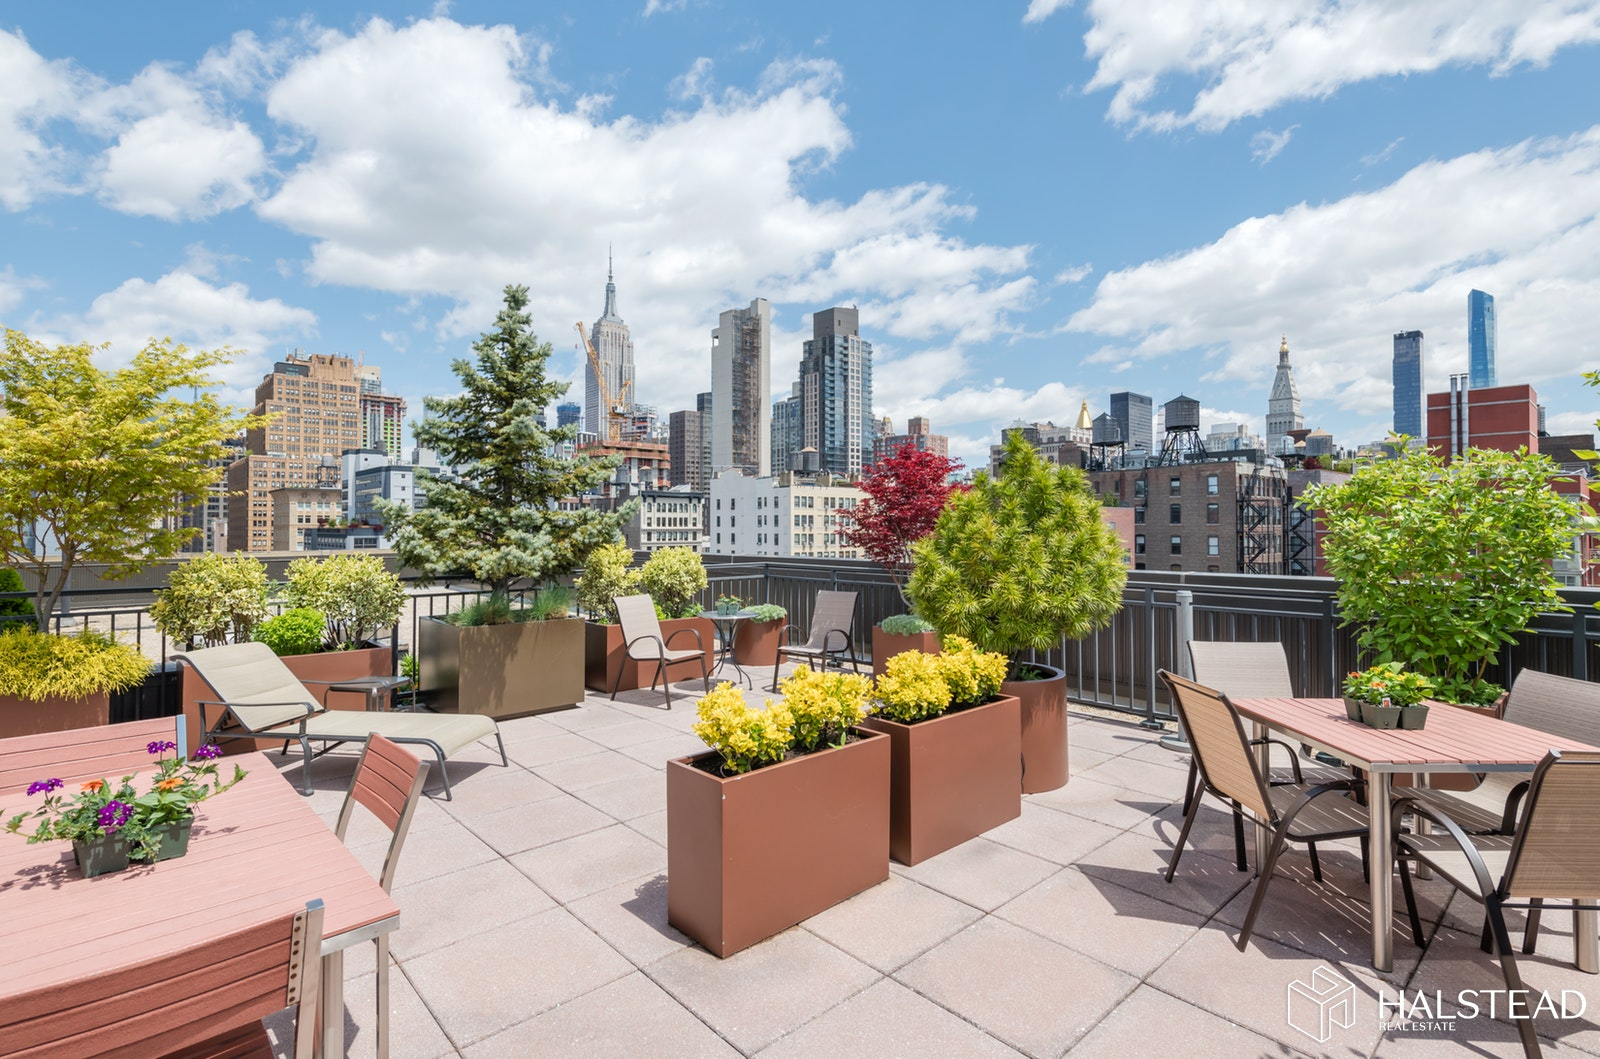 201 West 21st Street 8k, Chelsea, NYC, 10011, $486,000, Sold Property, Halstead Real Estate, Photo 5